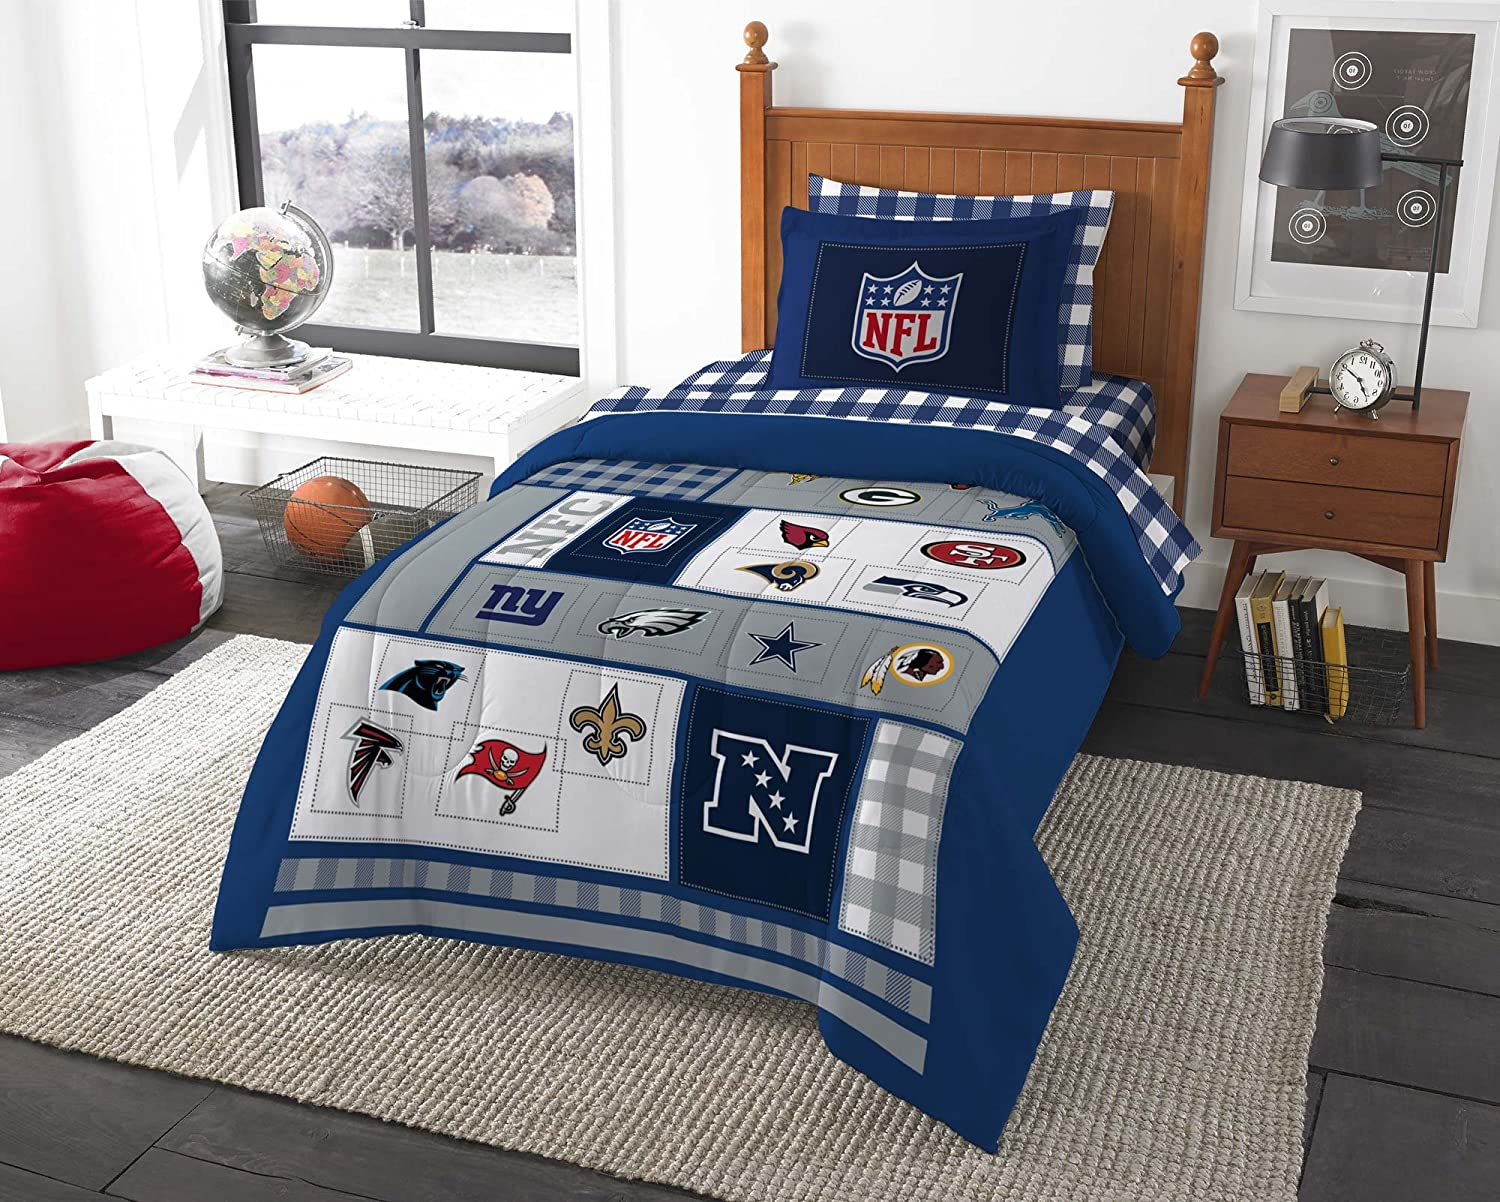 Nfl bedding for boys - Amazon Com Nfl Bedding Set Football Afc Vs Nfc Comforter Sheets And Sham Full Home Kitchen